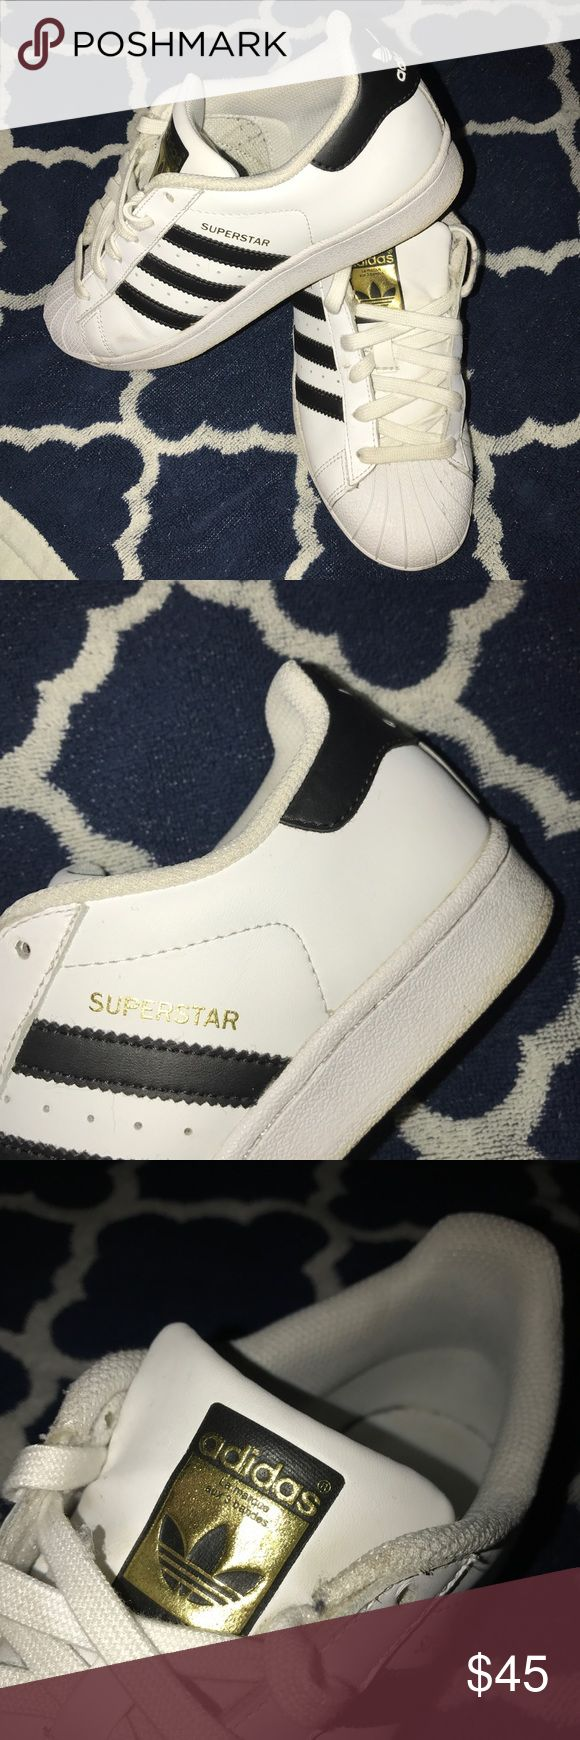 Adidas Superstar shoes Fairly worn; Adidas Superstar shoes, size 5 in women's. 👟 (Negotiable price)! Adidas Shoes Sneakers